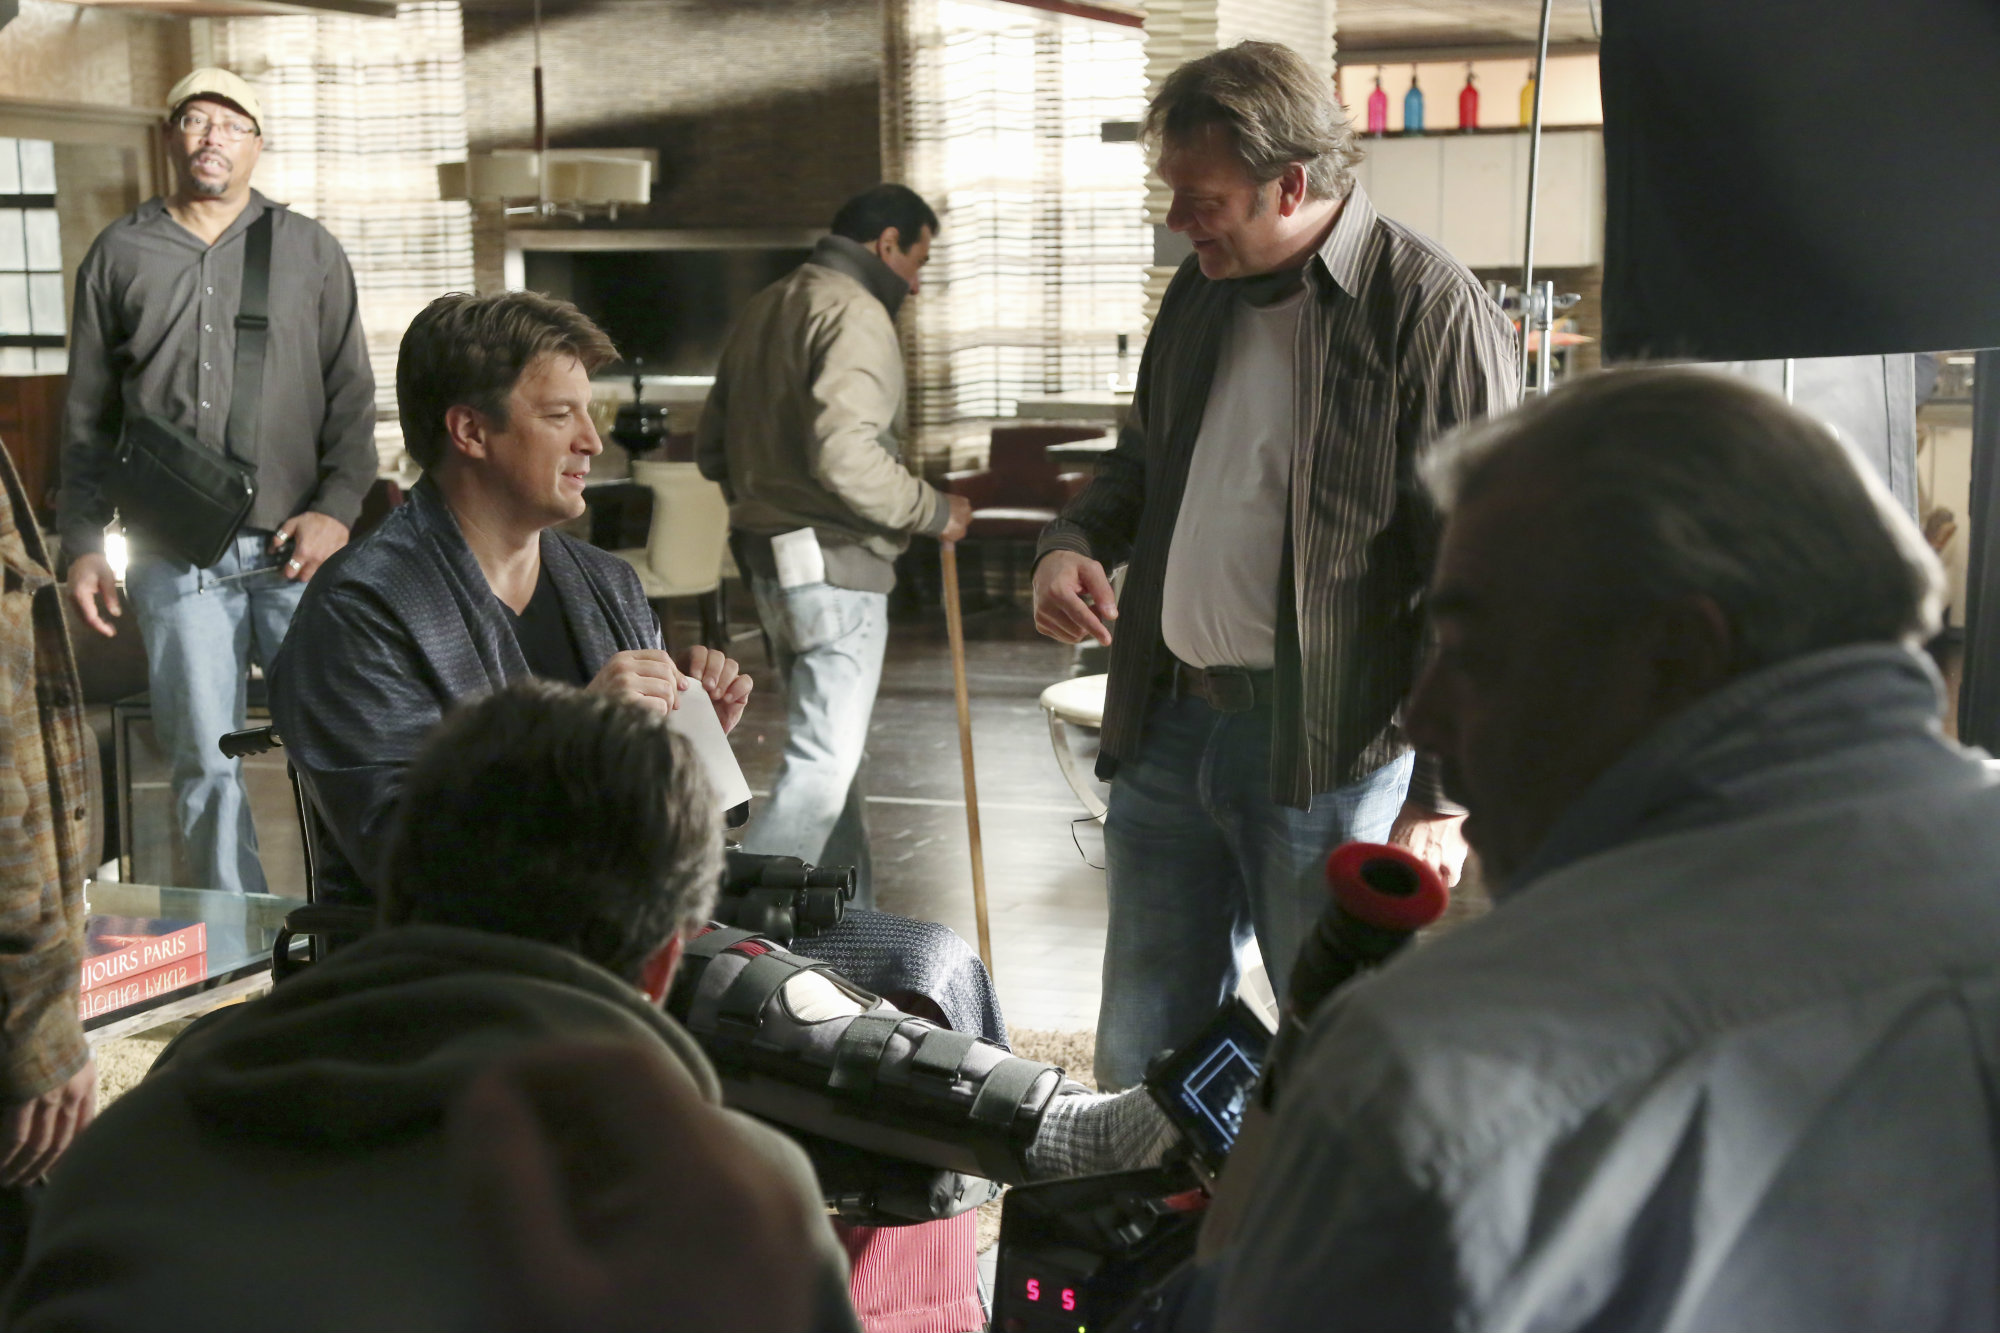 CASTLE - Behind-the-Scenes of 'The Lives of Others'